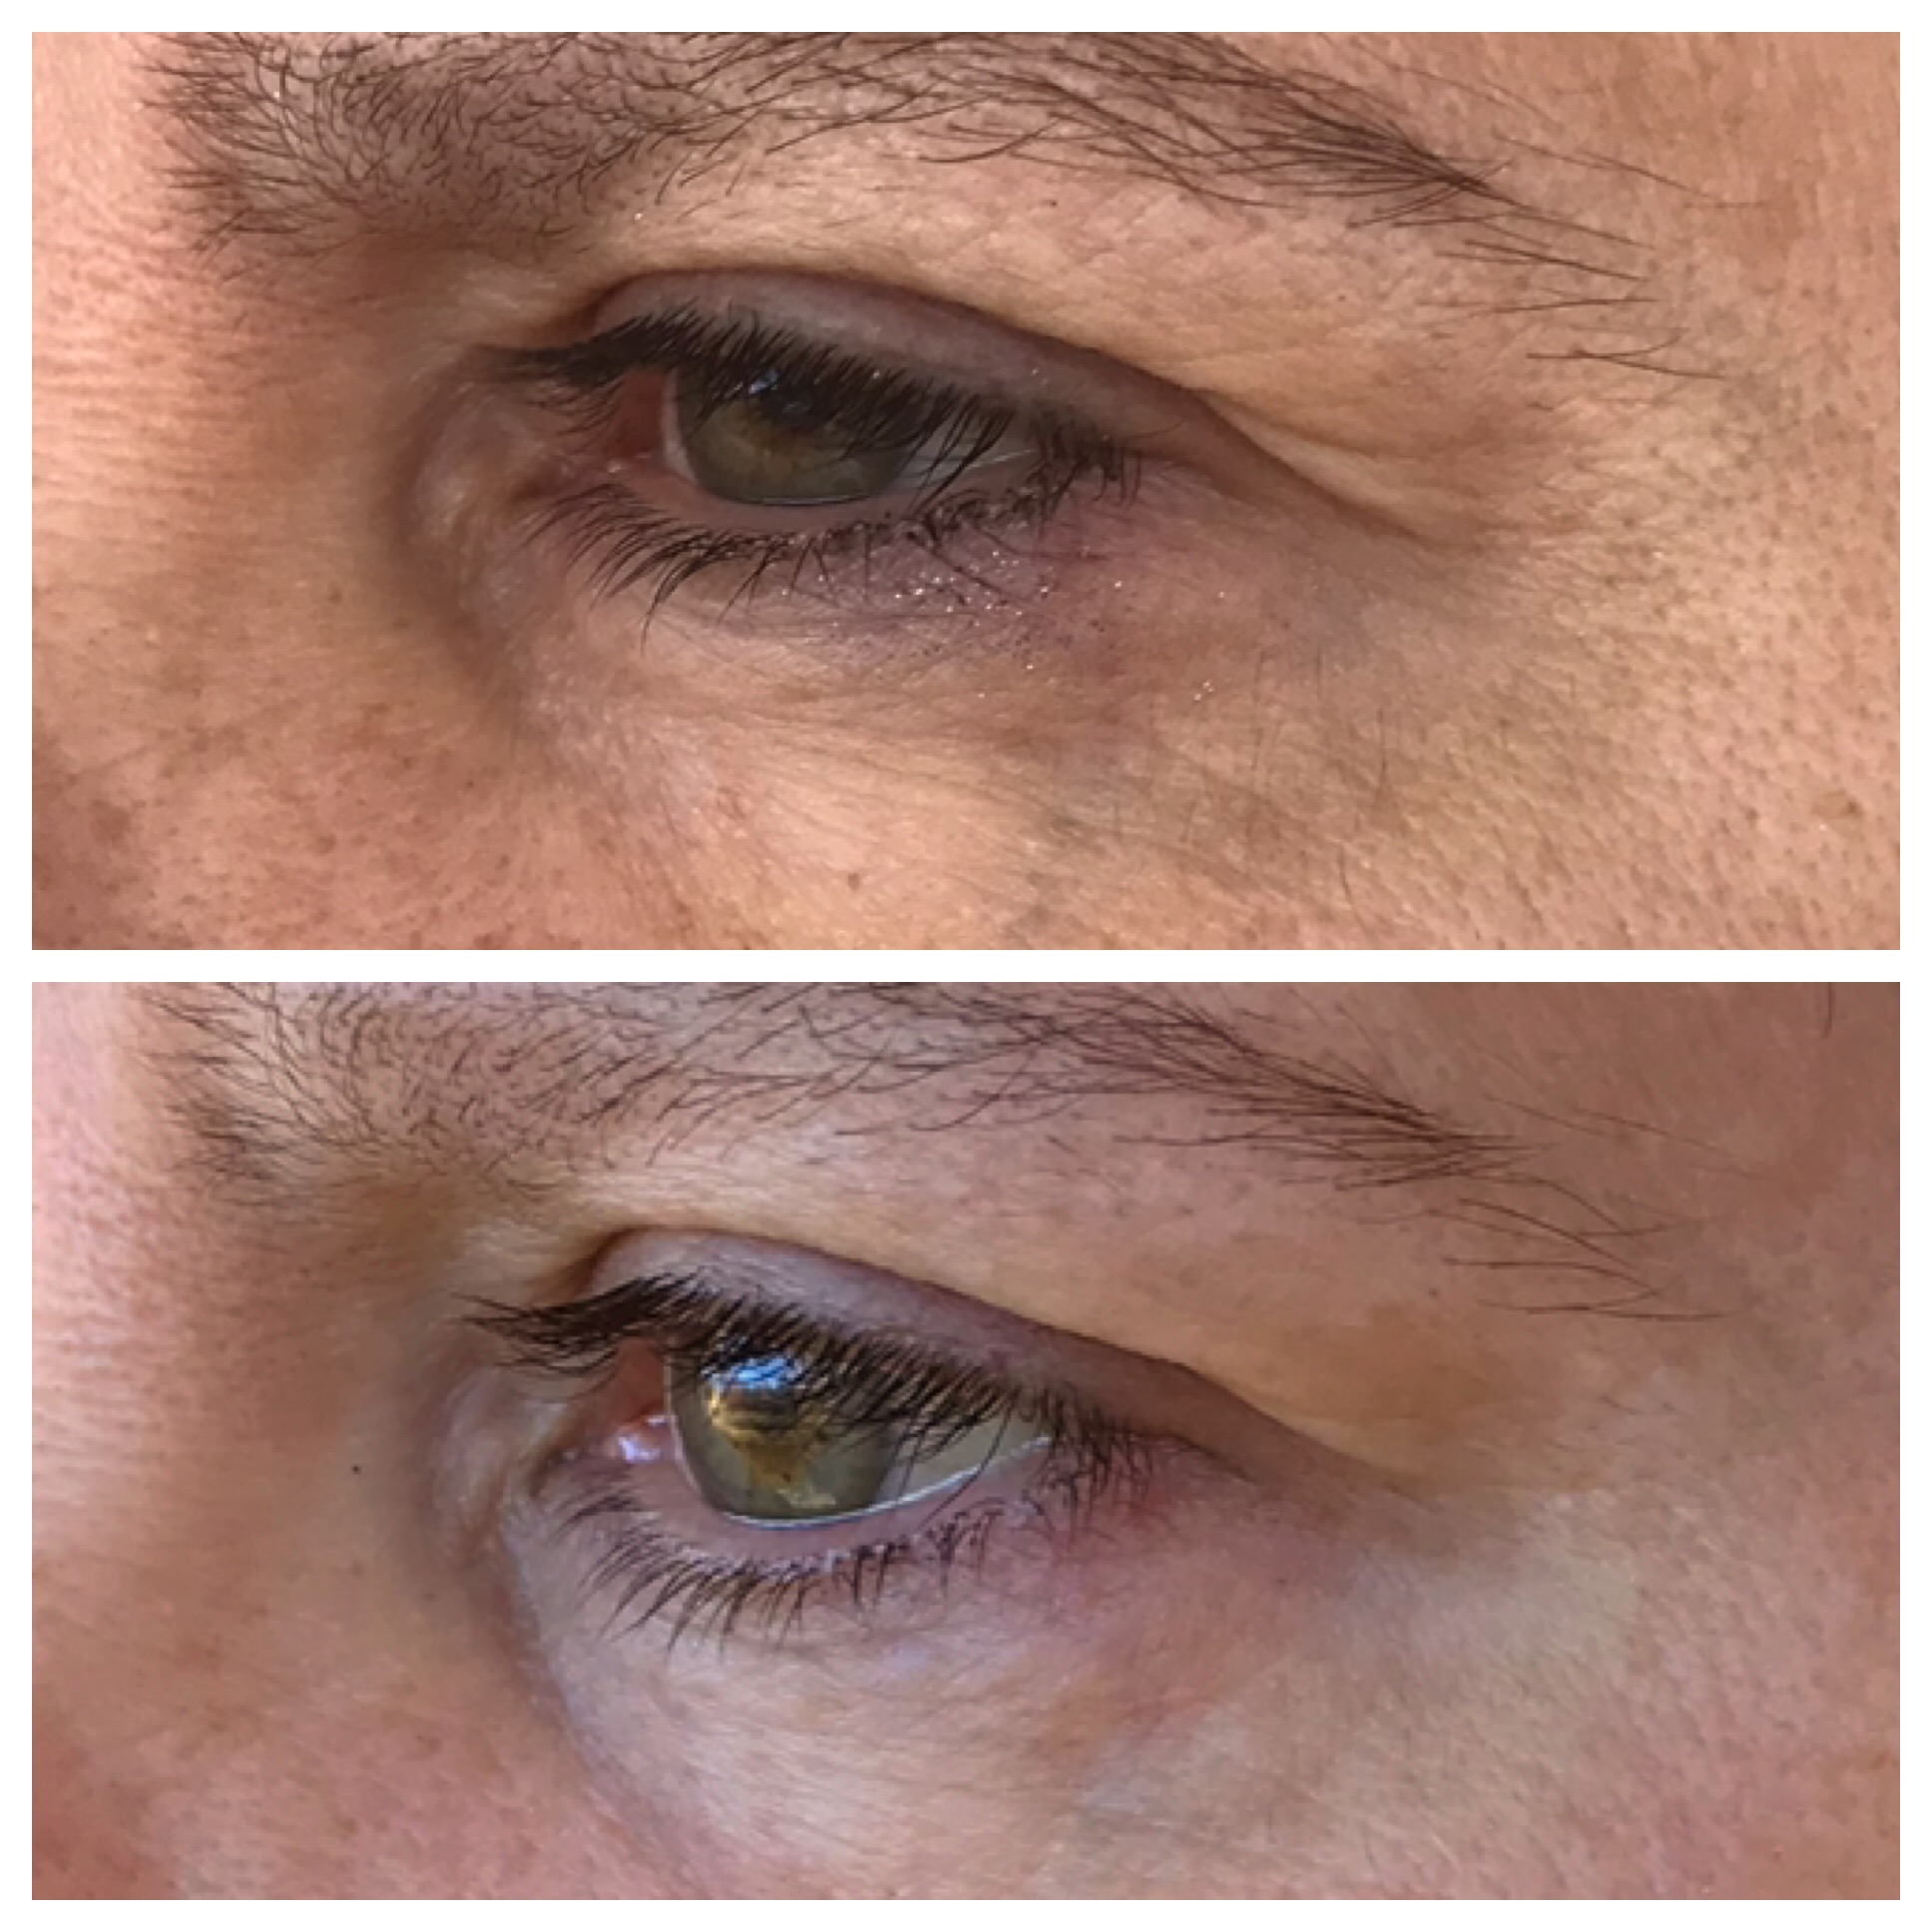 One treatment, 2 months healed. Eyelid is lifted and crows feet are reduced.